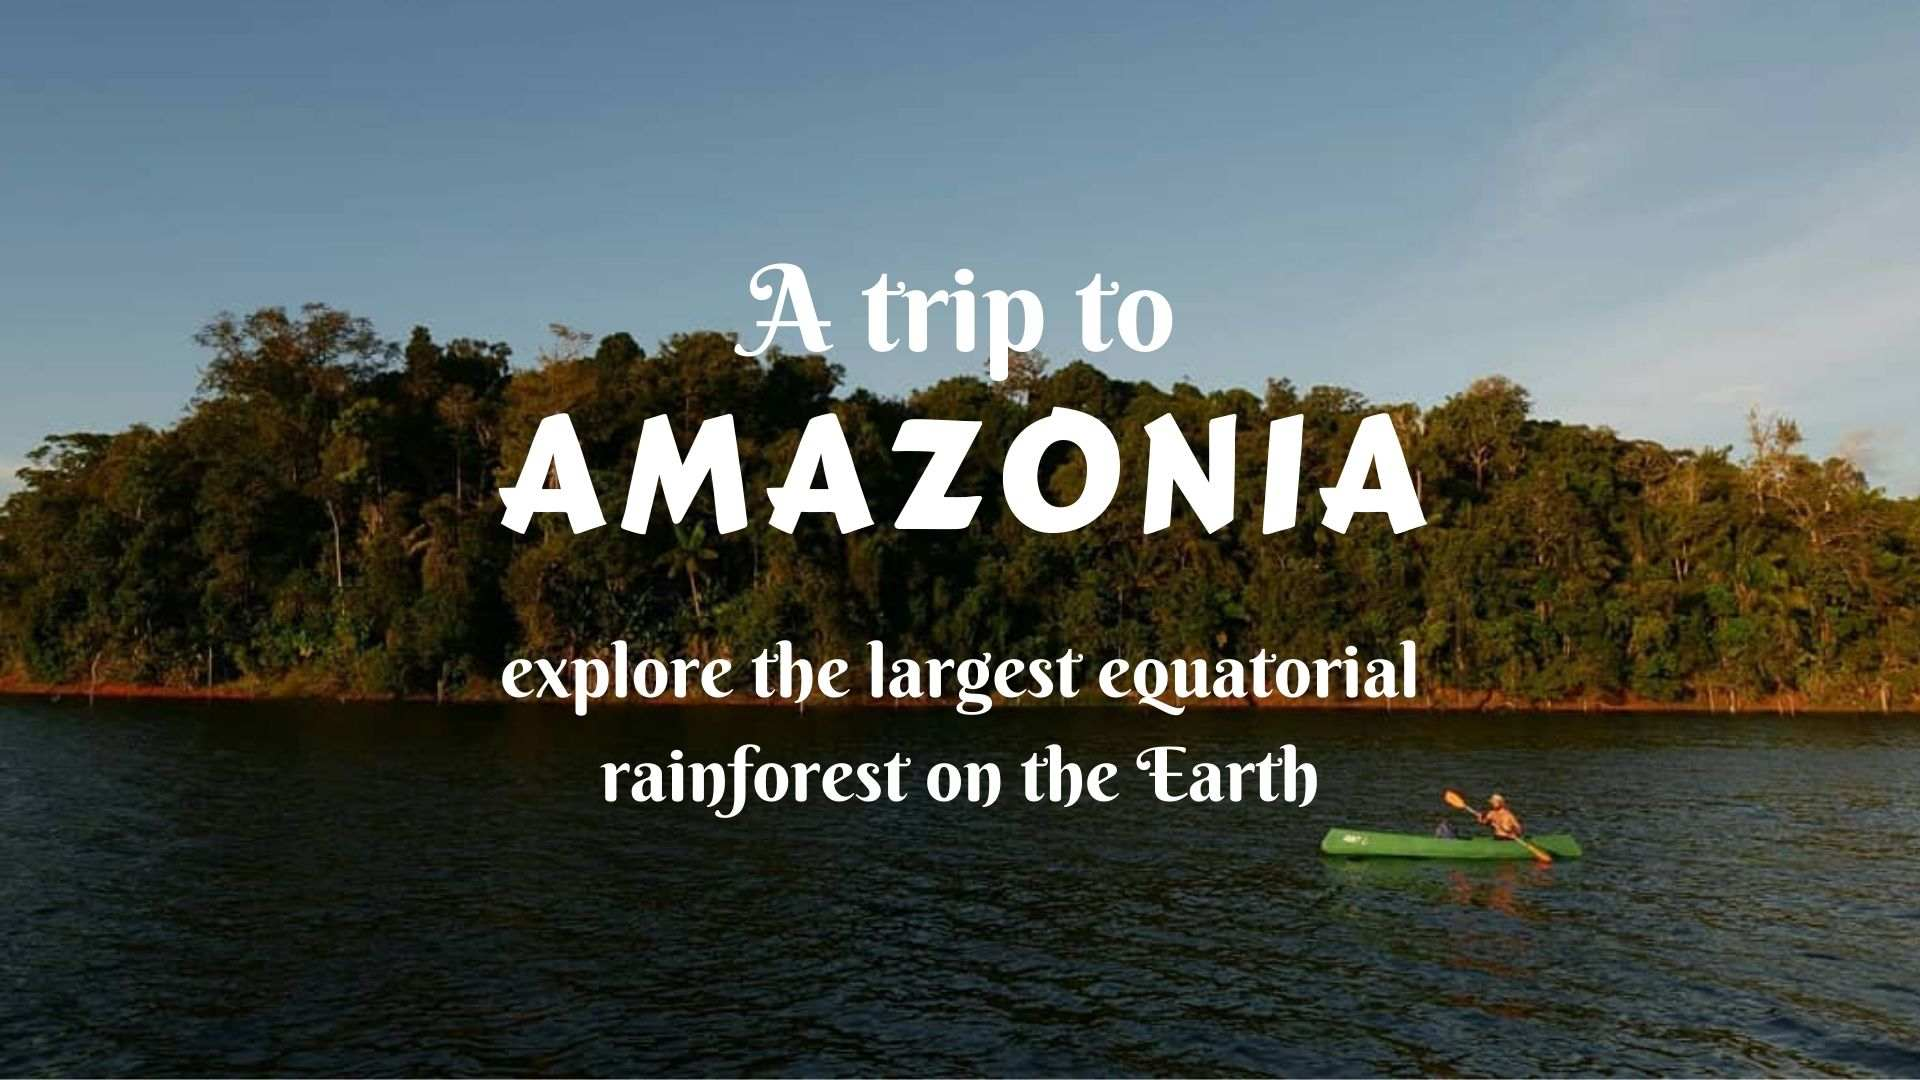 A trip to the Amazon- explore the largest equatorial rainforest on the Earth